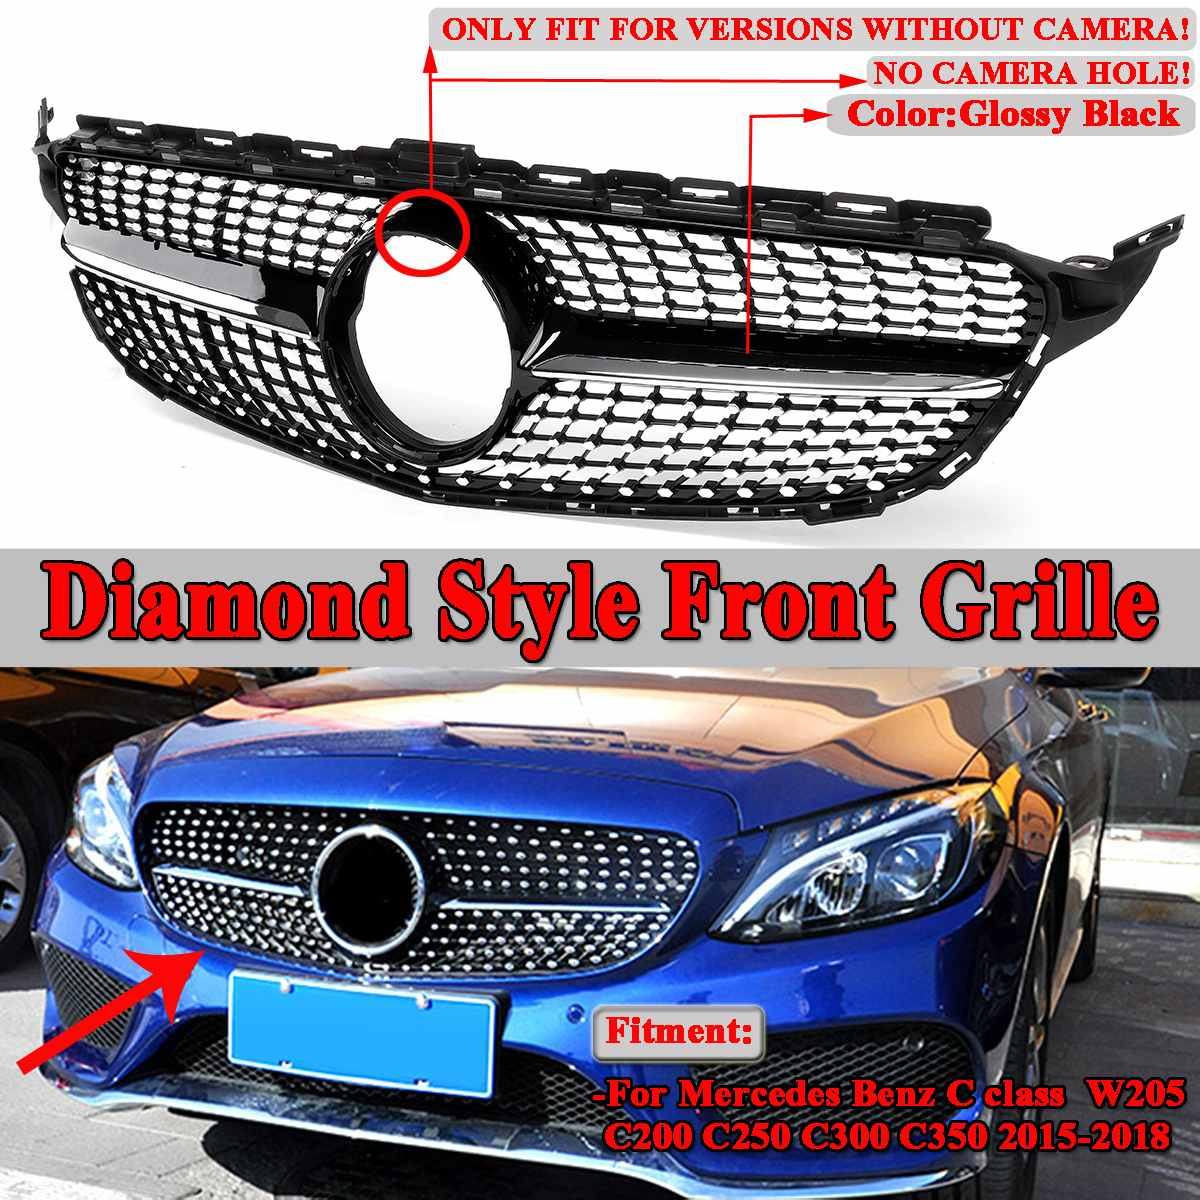 New Diamond Grille Car Front <font><b>Bumper</b></font> Mesh Grille Grill For Mercedes For <font><b>Benz</b></font> <font><b>W205</b></font> C Class C200 C250 C300 2015-2018 image